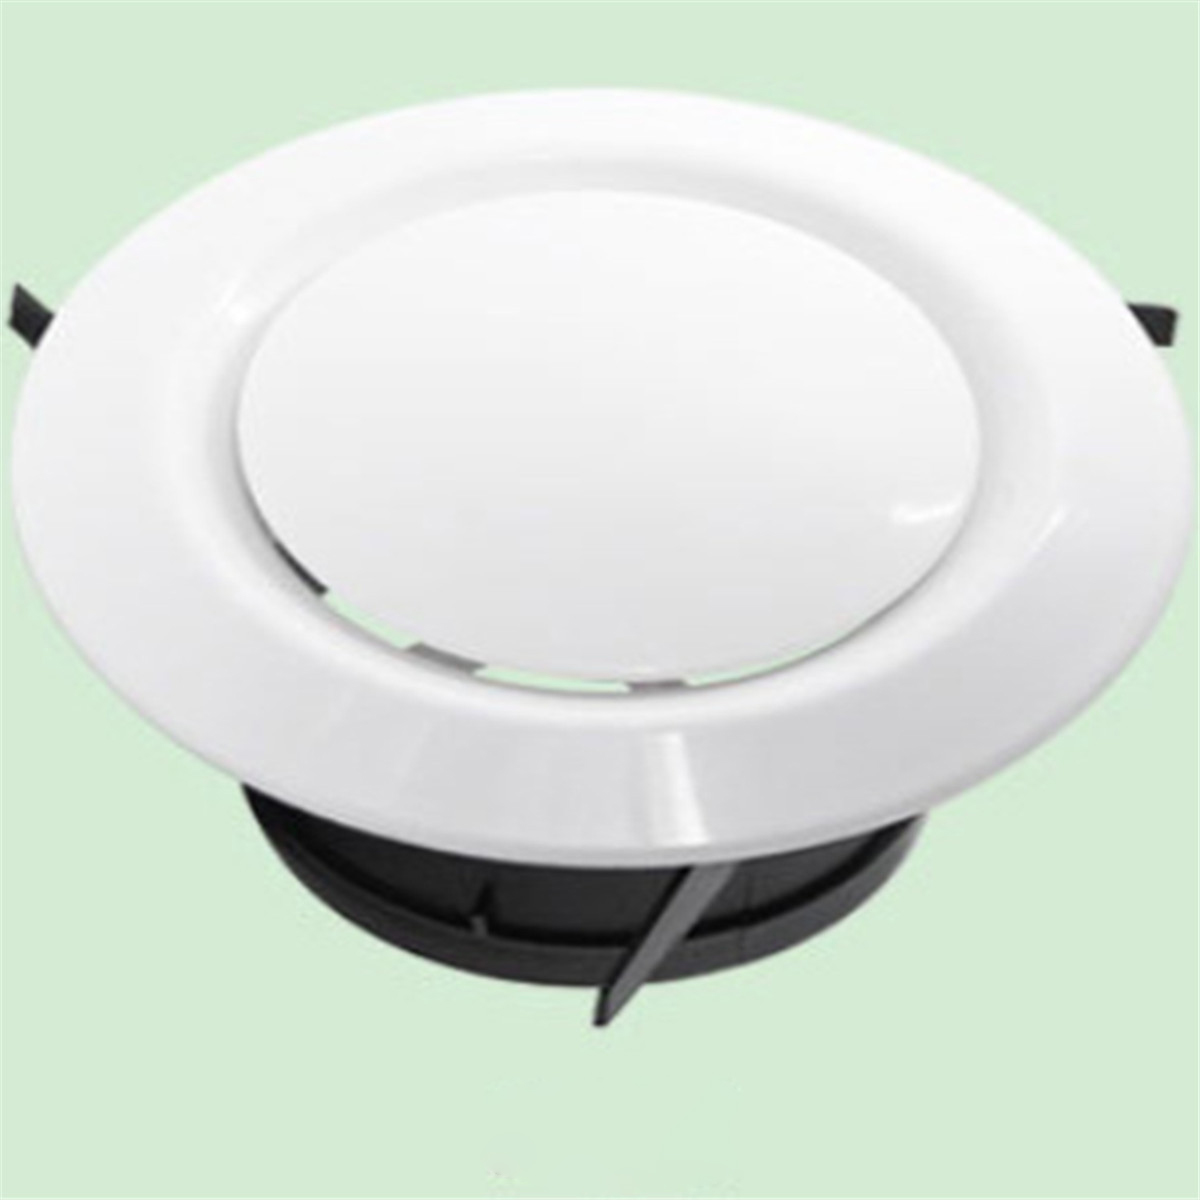 Mounting Dia Adjustable Disc Ventilation Circle Air Vent Grille Cover For RV Caravan Camping Car 100MM